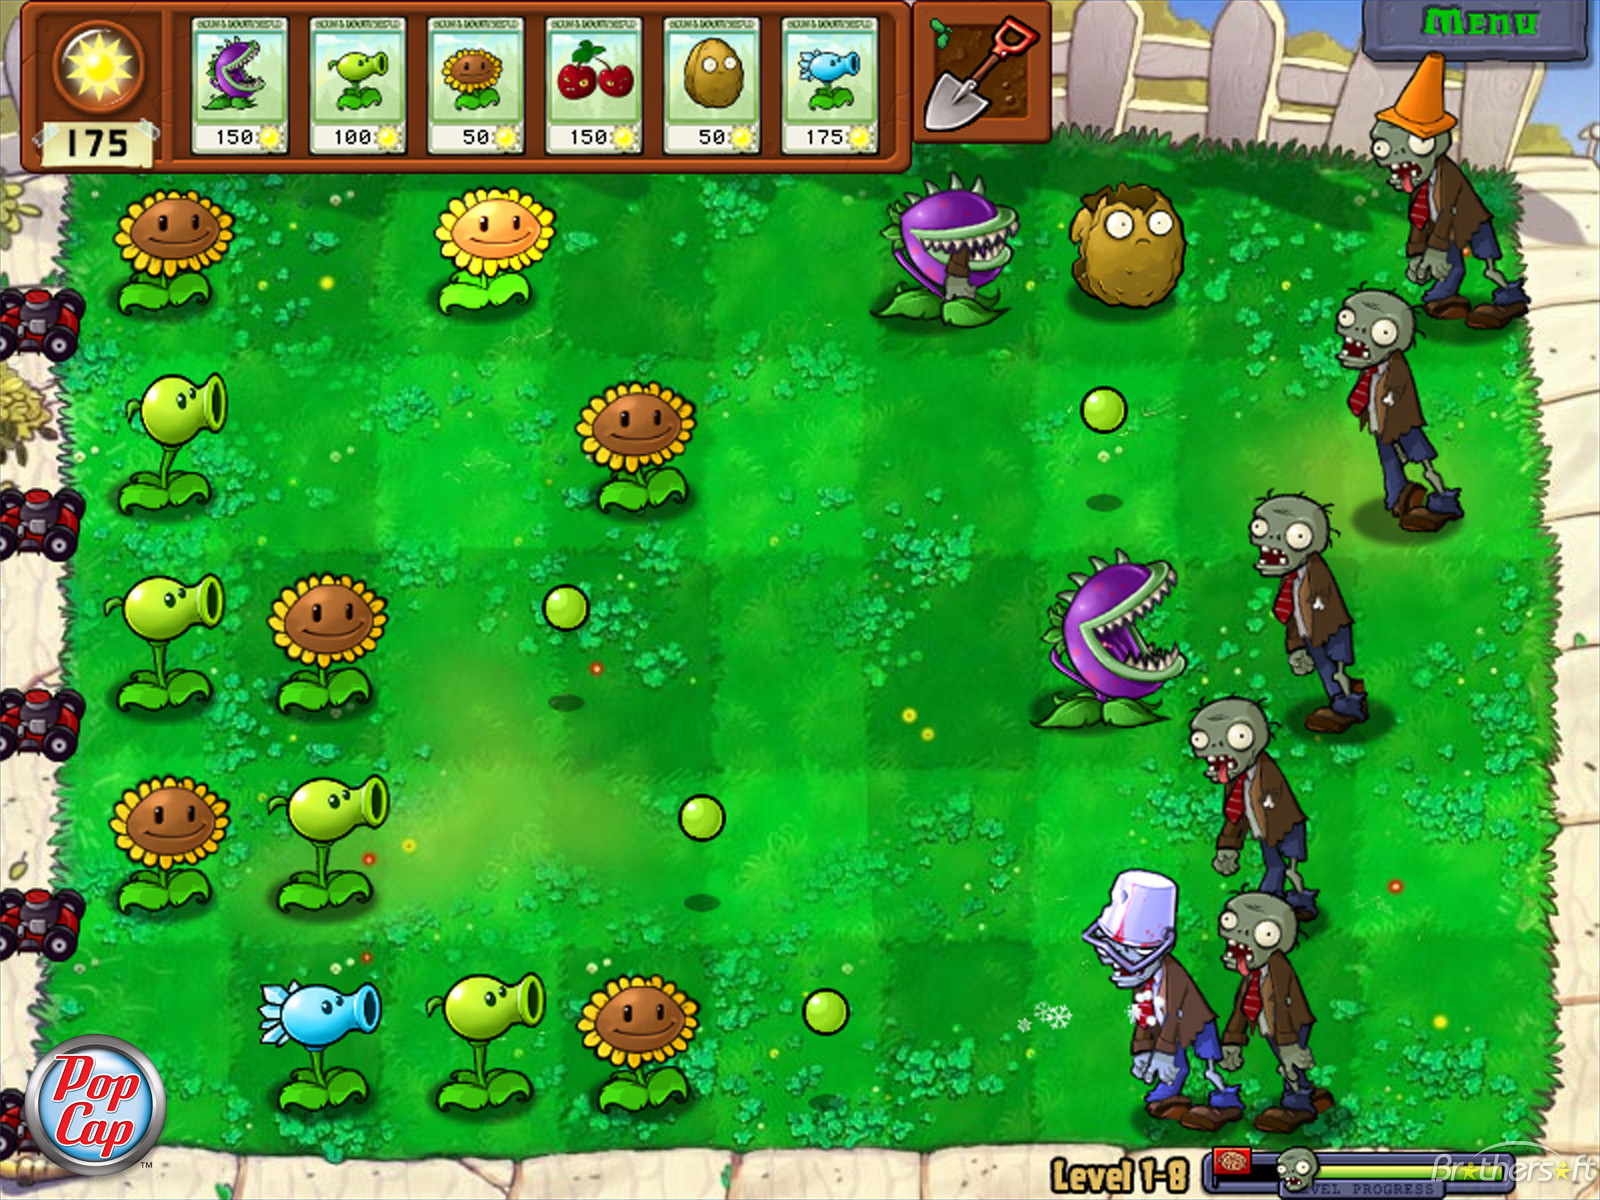 http://4.bp.blogspot.com/-VyccJv_IonQ/Td_PNEMJfSI/AAAAAAAAAnI/yn9P7ej8LKY/s1600/plants_vs_zombies_for_mac-244037-1244017191.jpeg